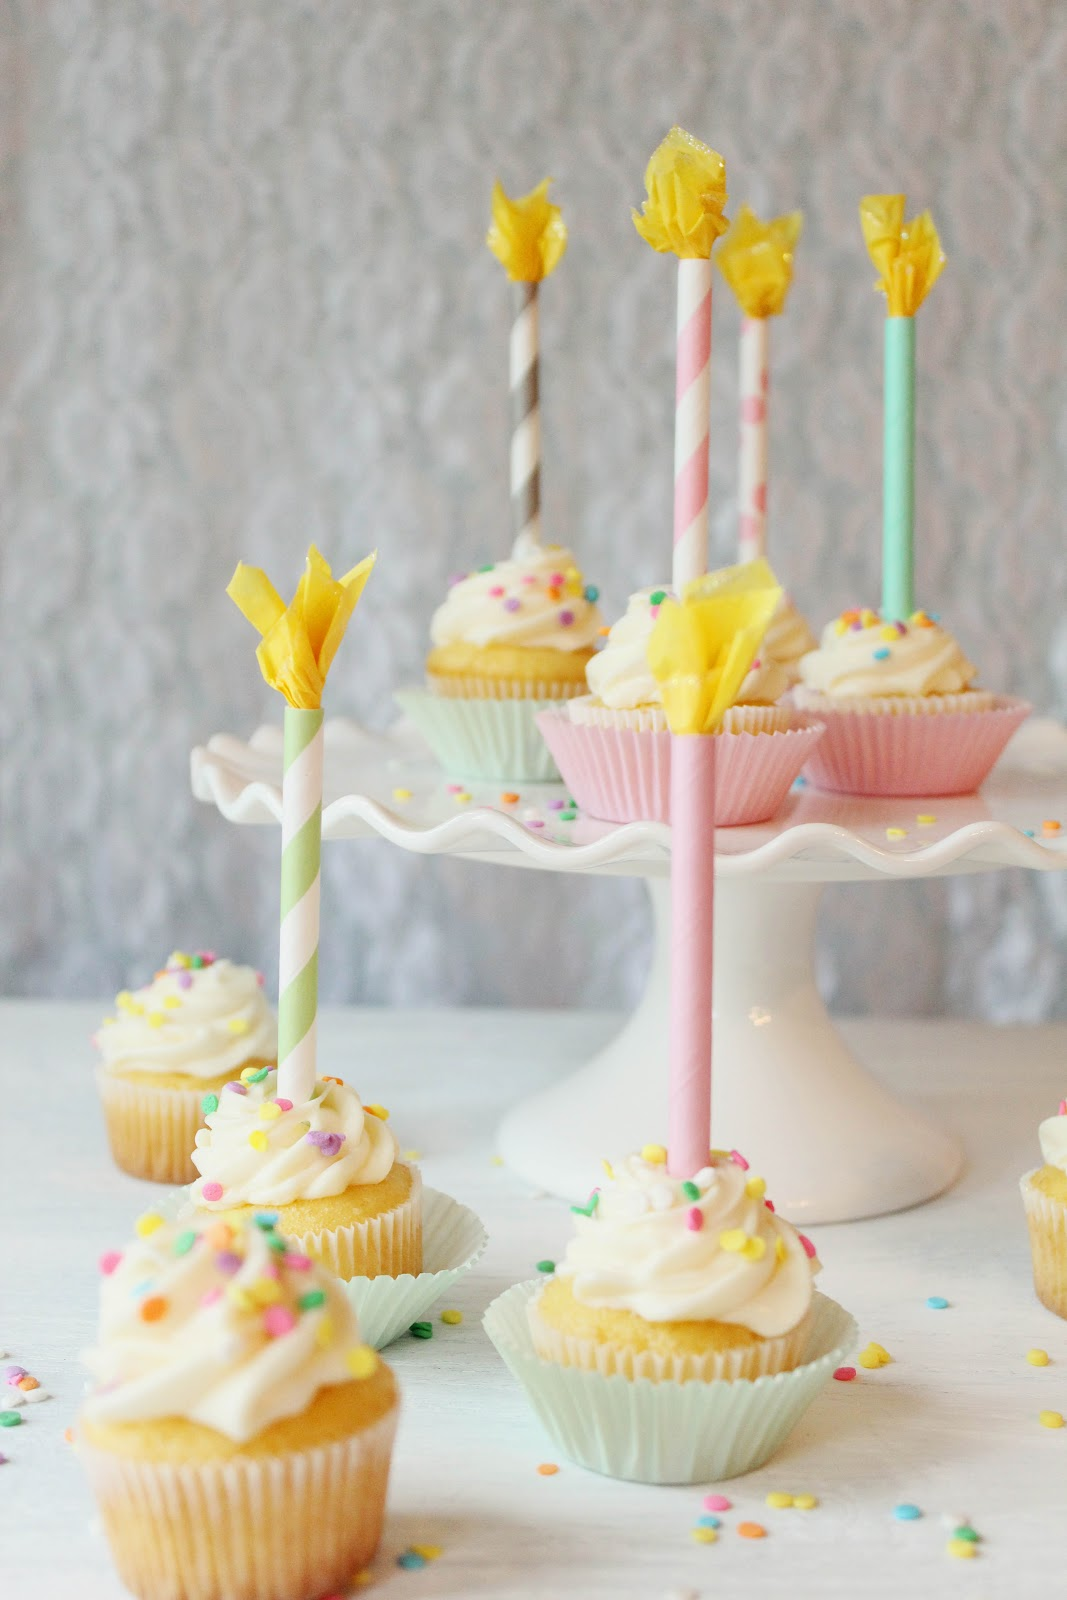 How To Make Different Kinds Of Cakes